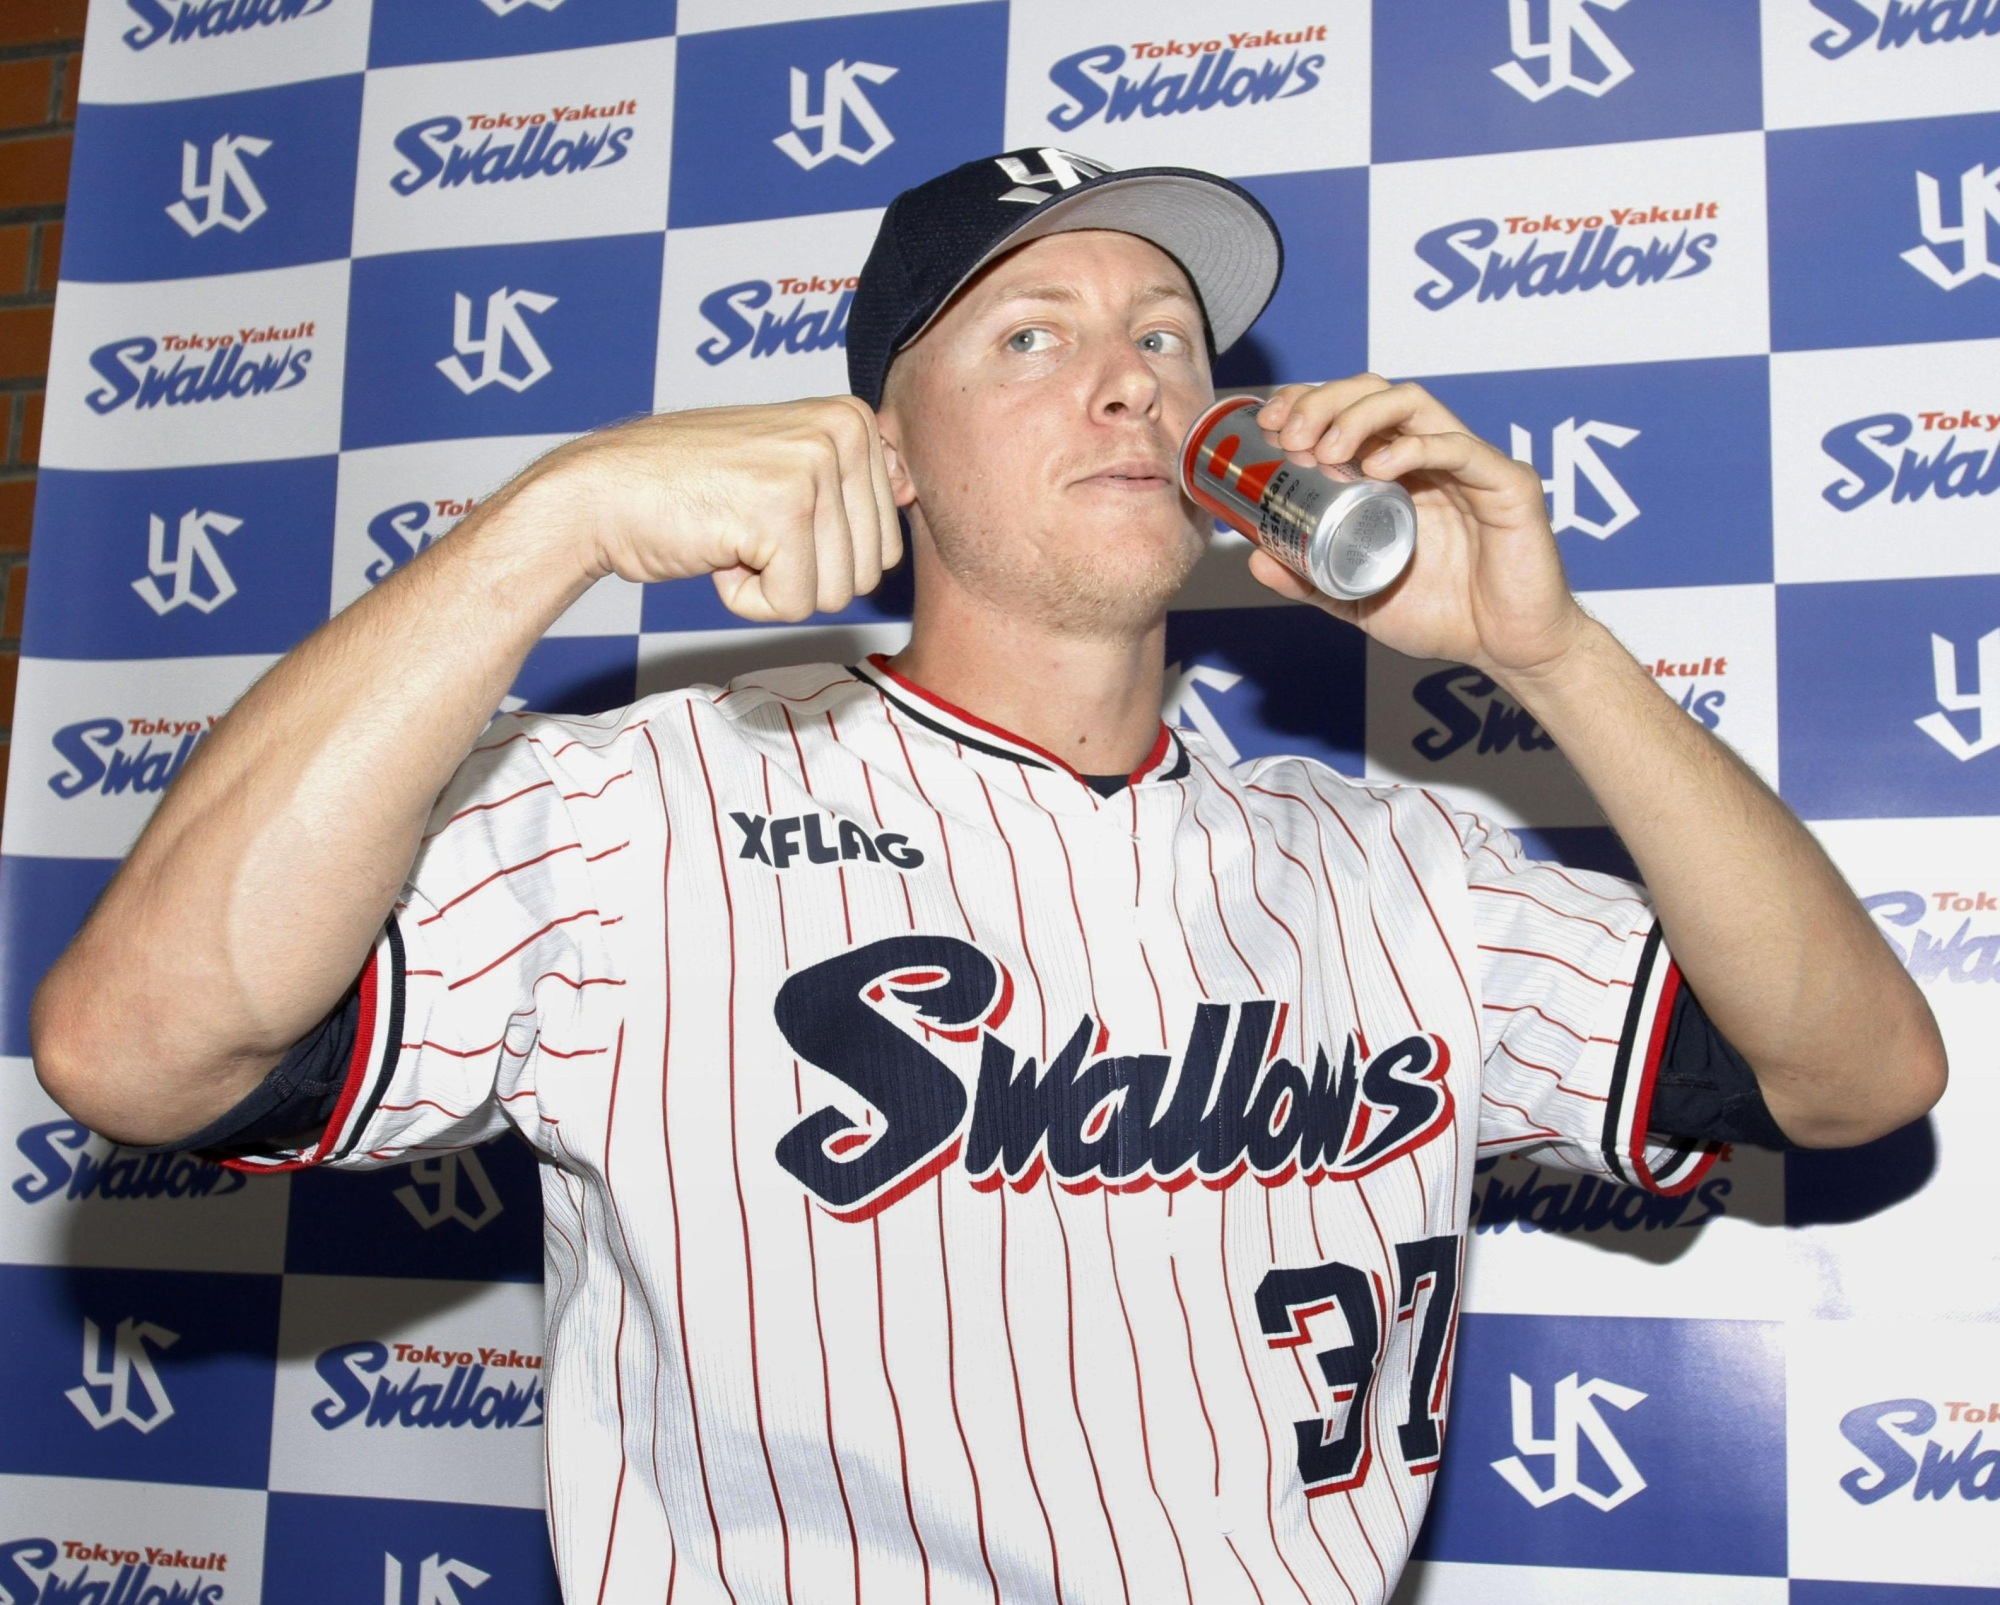 Tokyo Yakult Swallows All-Star pitcher Scott McGough poses for photographs after a game on Wednesday. | KYODO